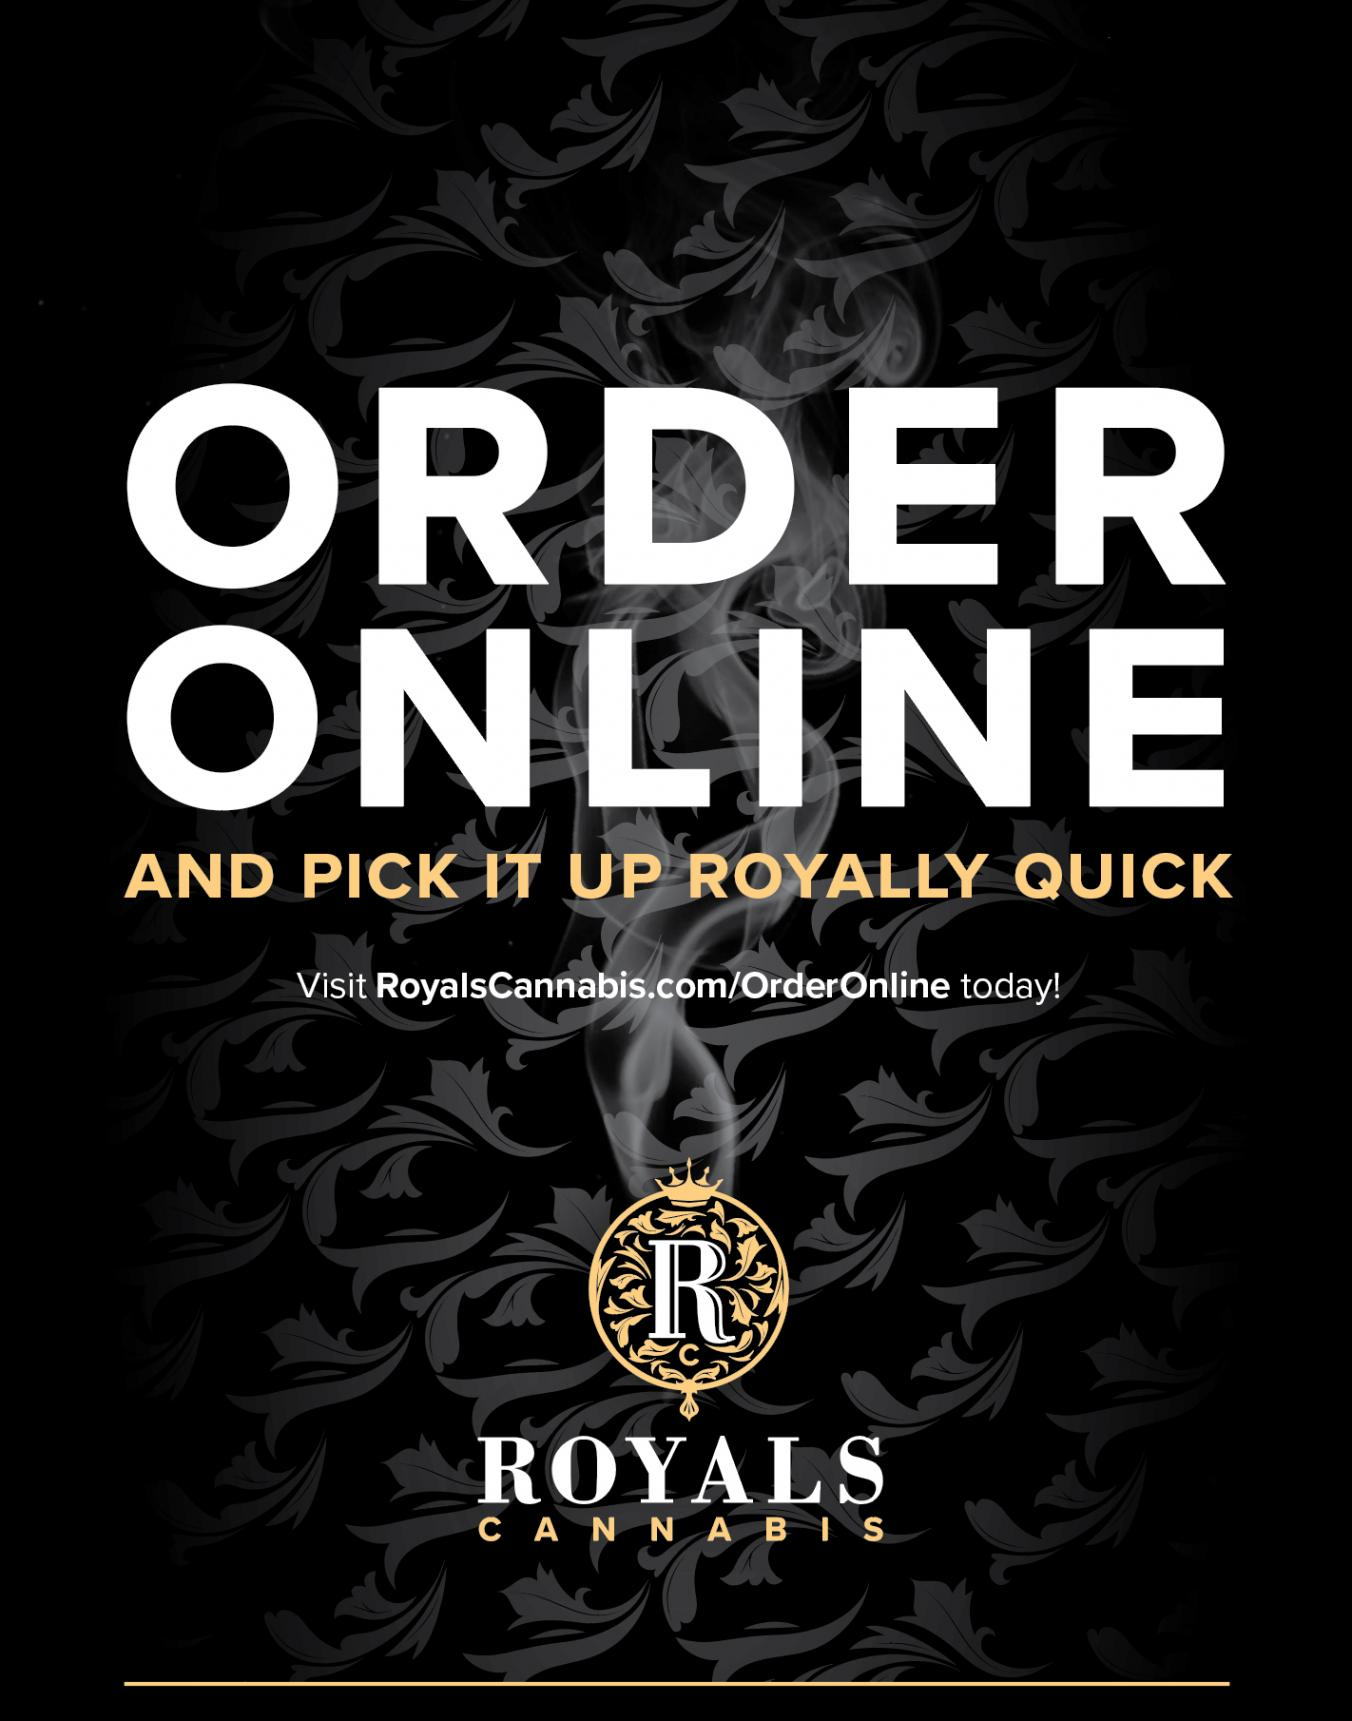 Order Online and Save Time!